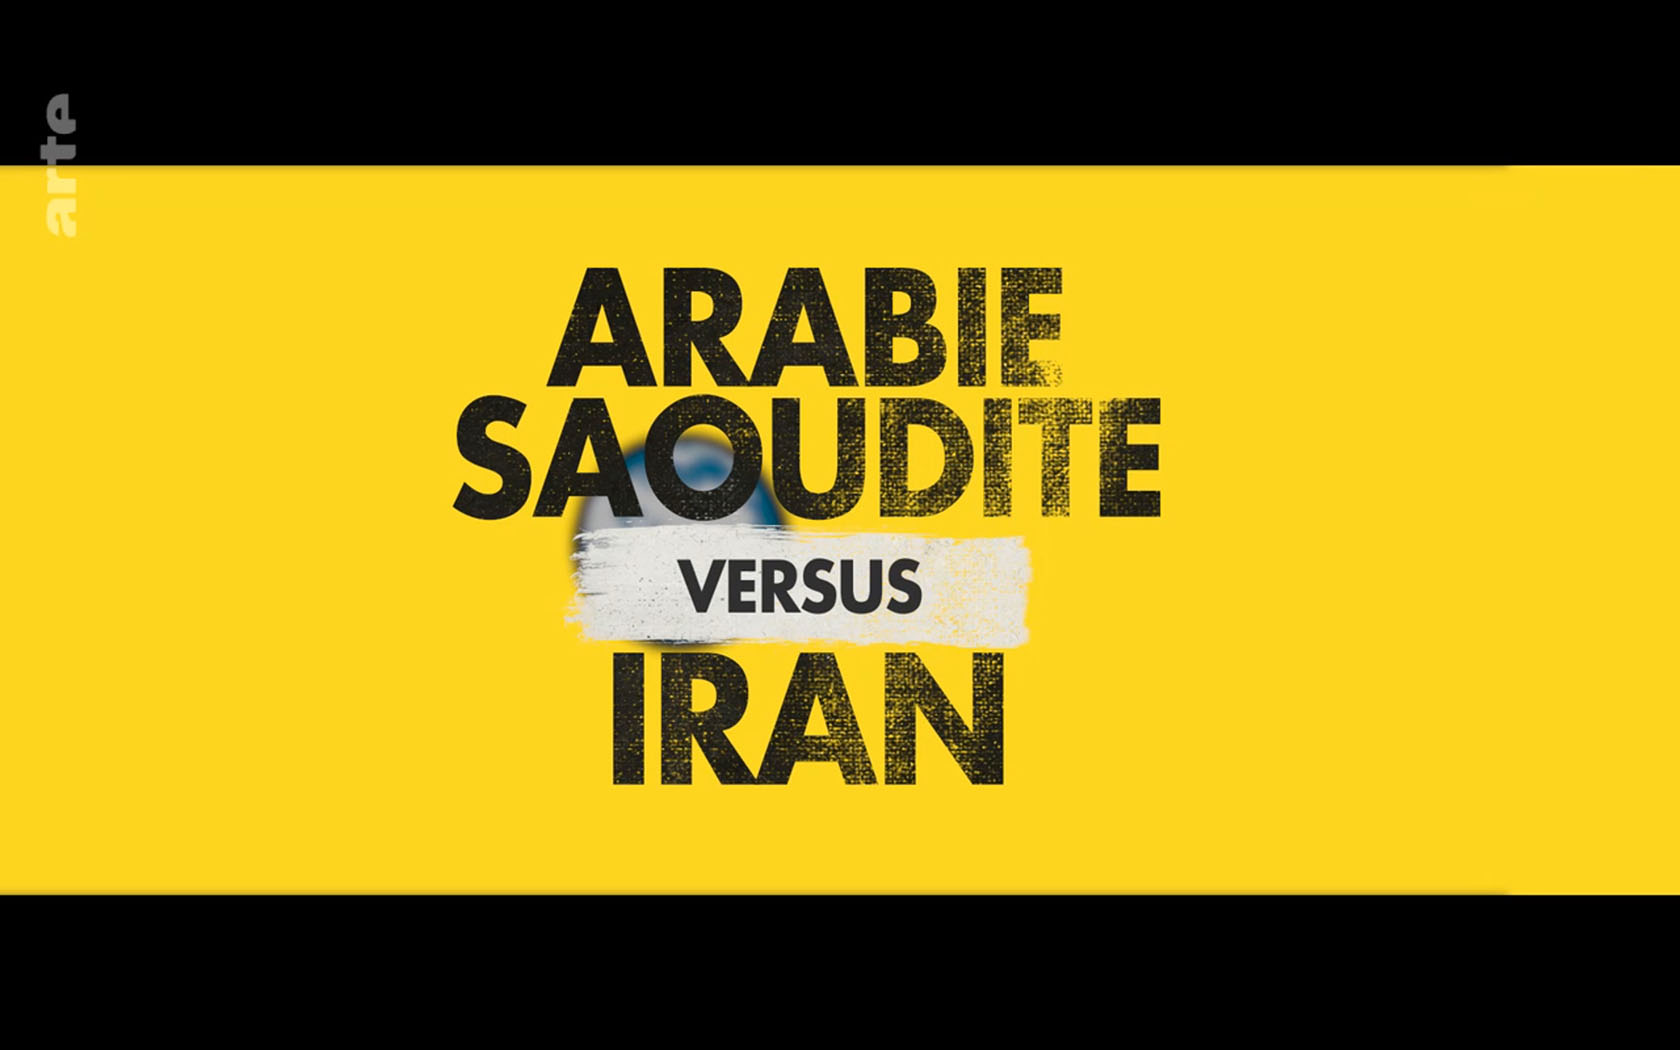 Arabie-Saoudite-vs-Iran-Capture-1